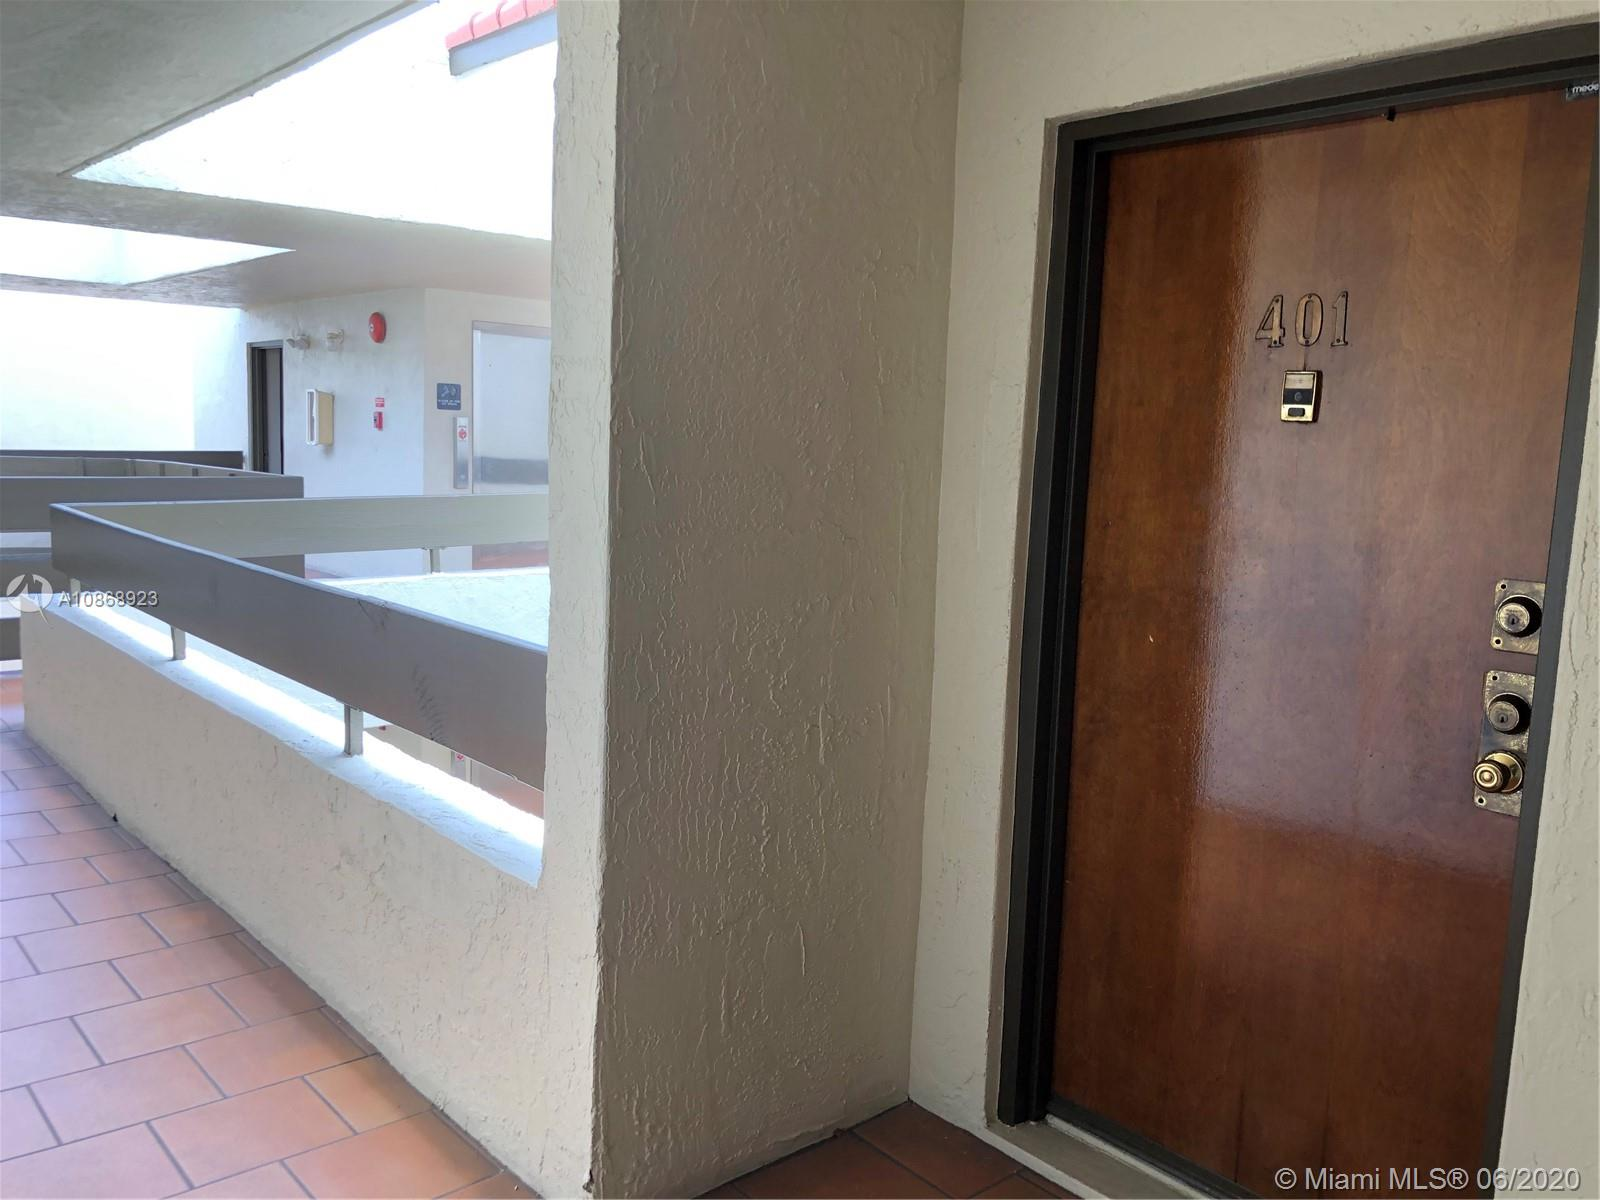 8827 SW 123rd Ct # 401, Miami, Florida 33186, 2 Bedrooms Bedrooms, ,2 BathroomsBathrooms,Residential,For Sale,8827 SW 123rd Ct # 401,A10868923